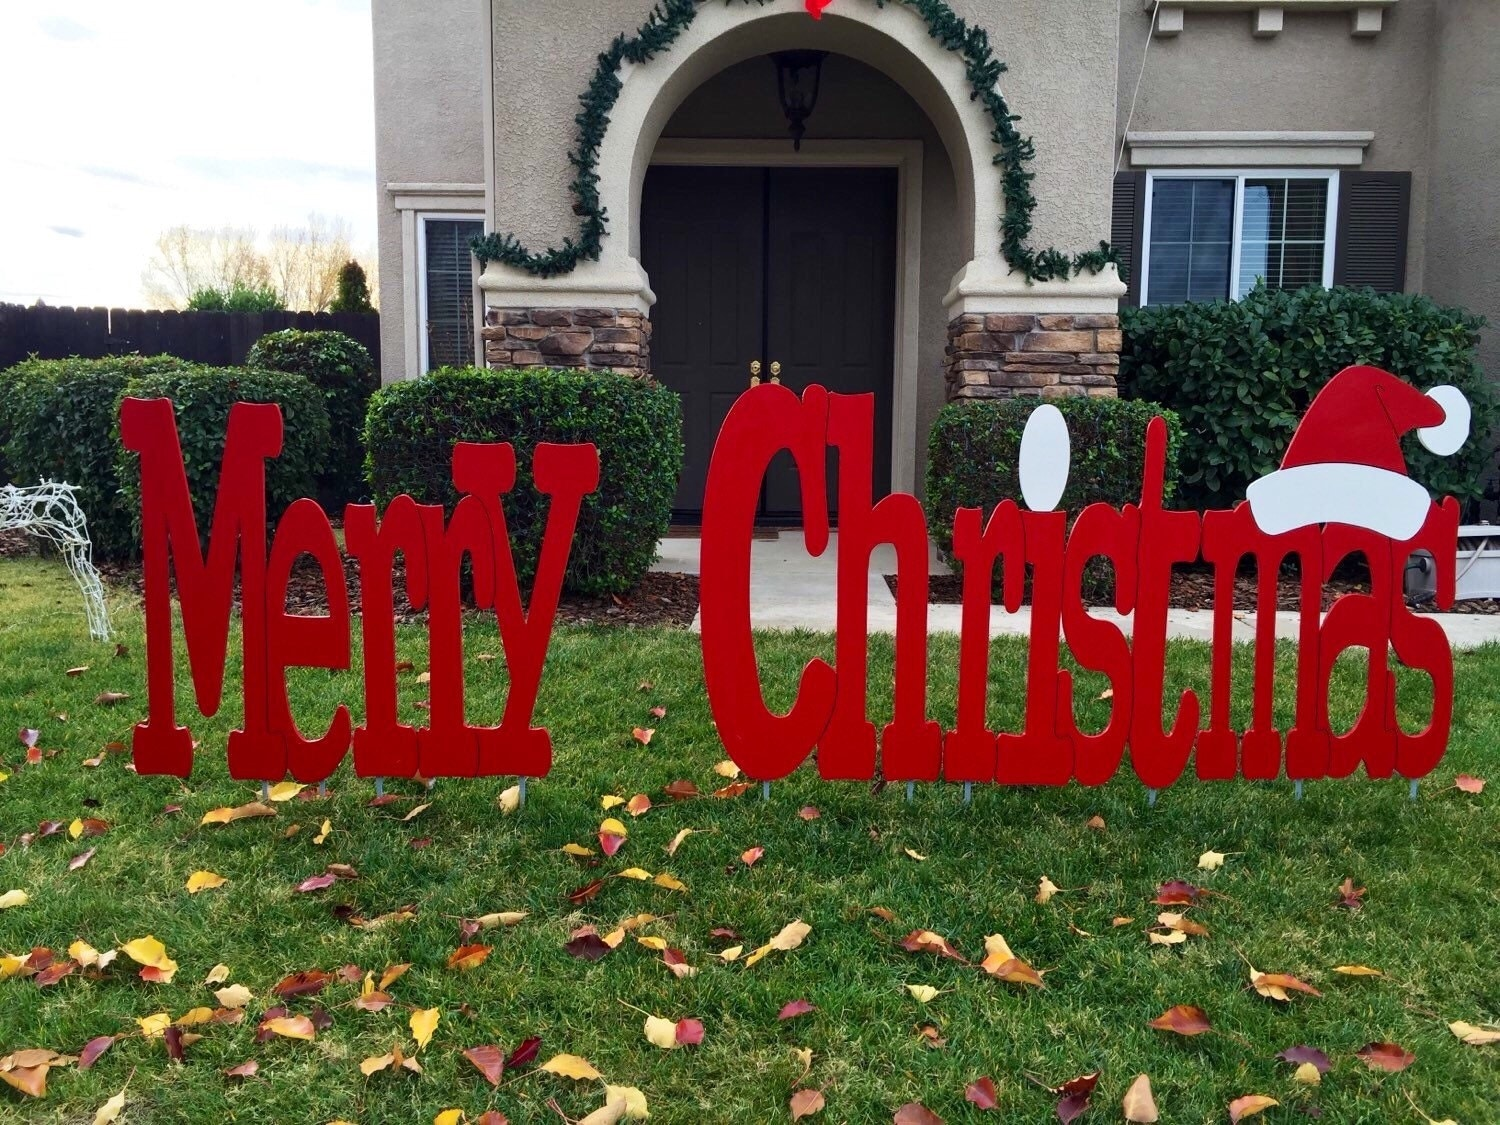 Merry christmas outdoor holiday yard art sign large for Large christmas decorations